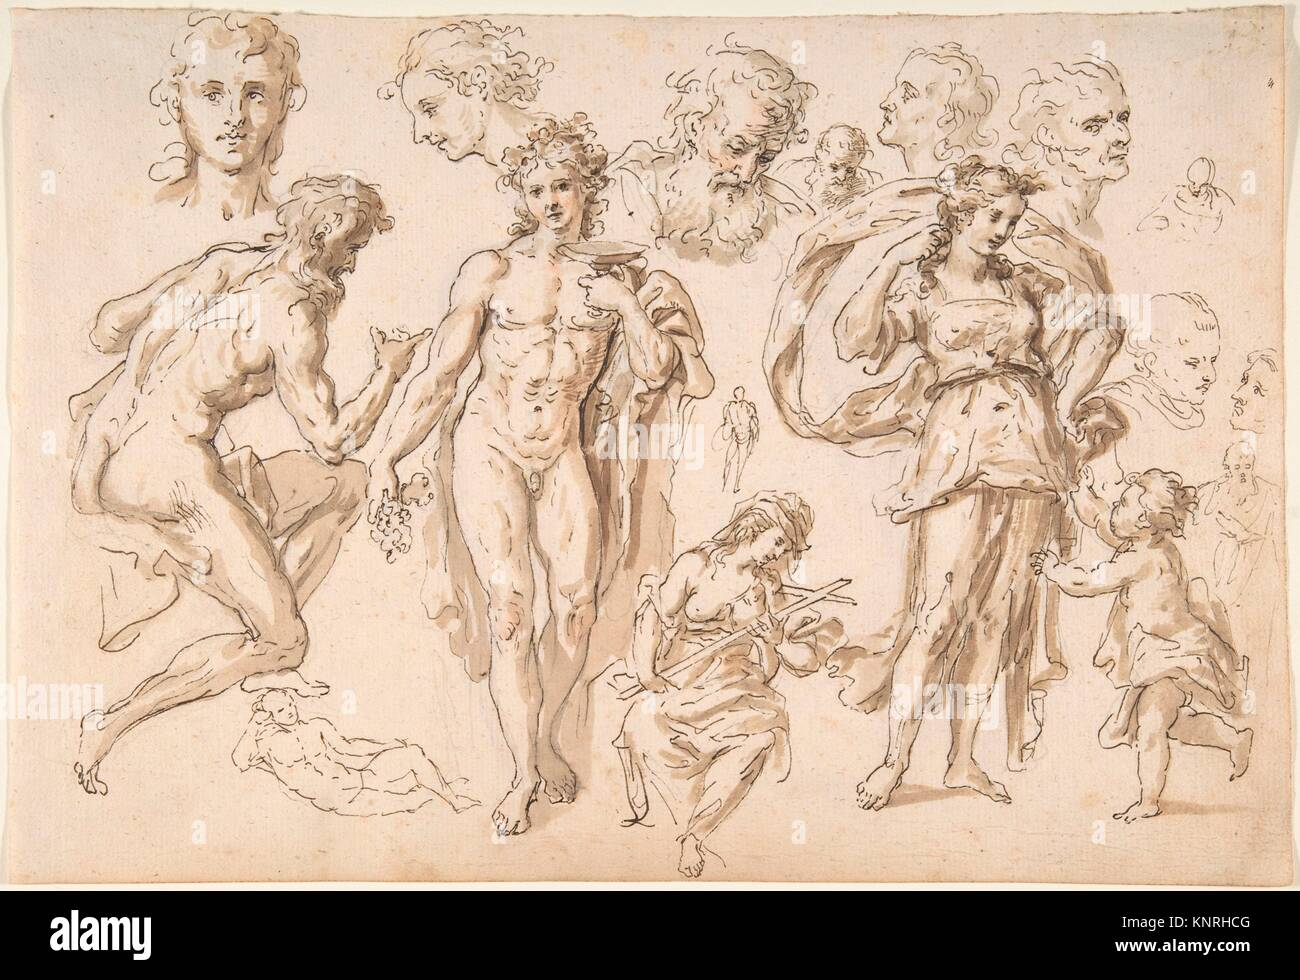 Recto: figure and head-studies (including Bacchus); Verso: four main figure studies repeated from the recto. Artist: - Stock Image